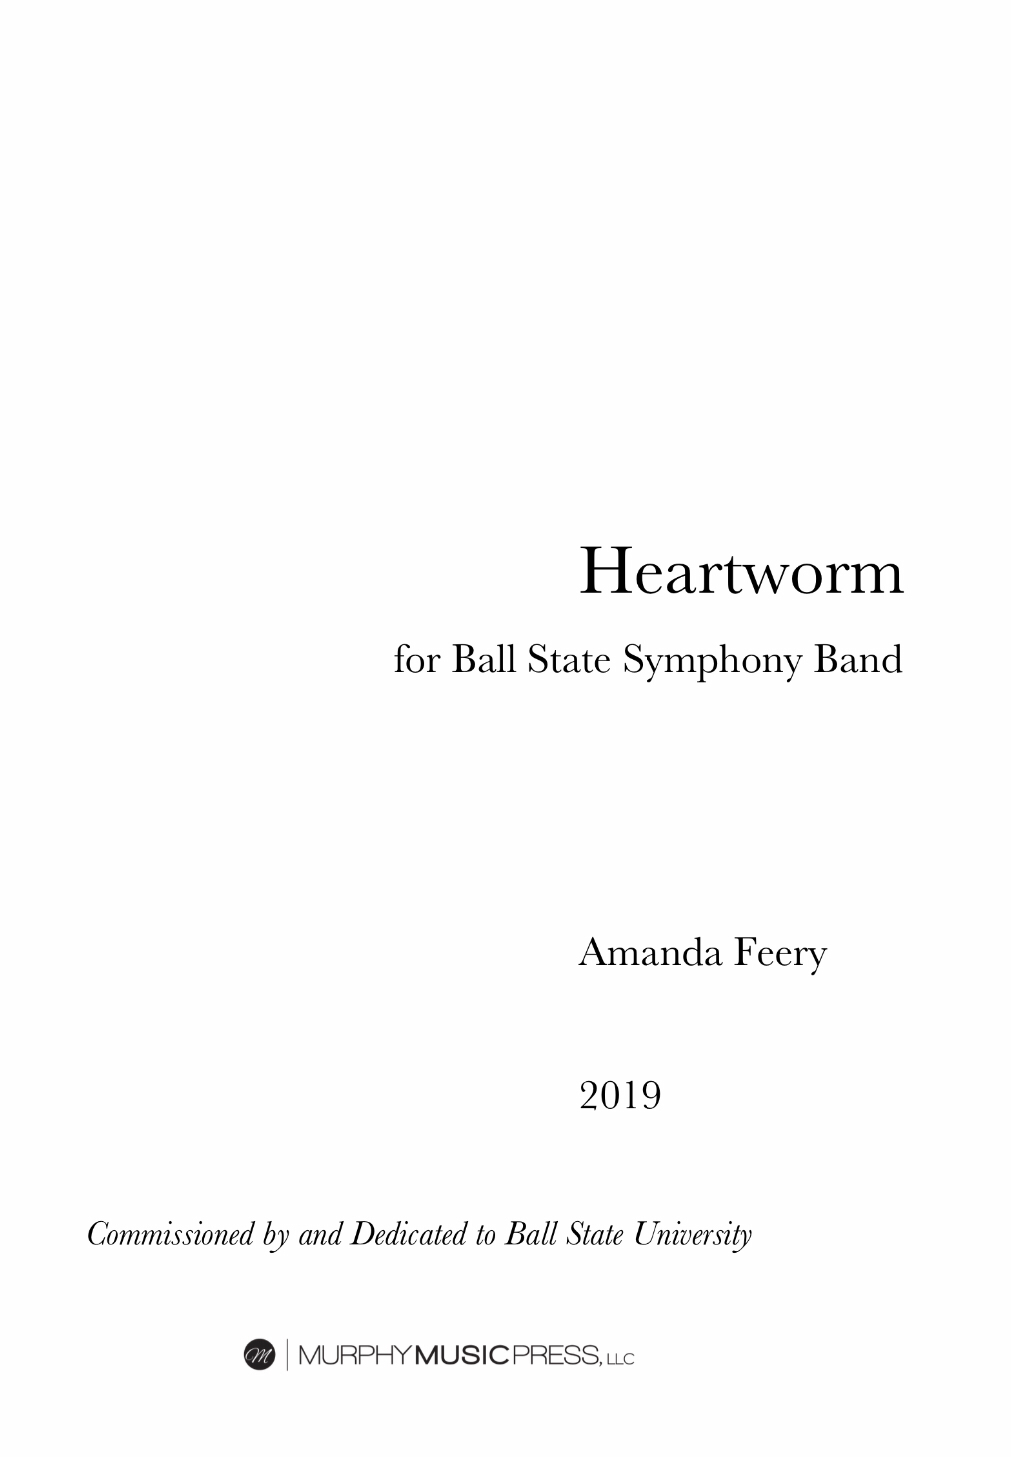 Heartworm by Amanda Feery